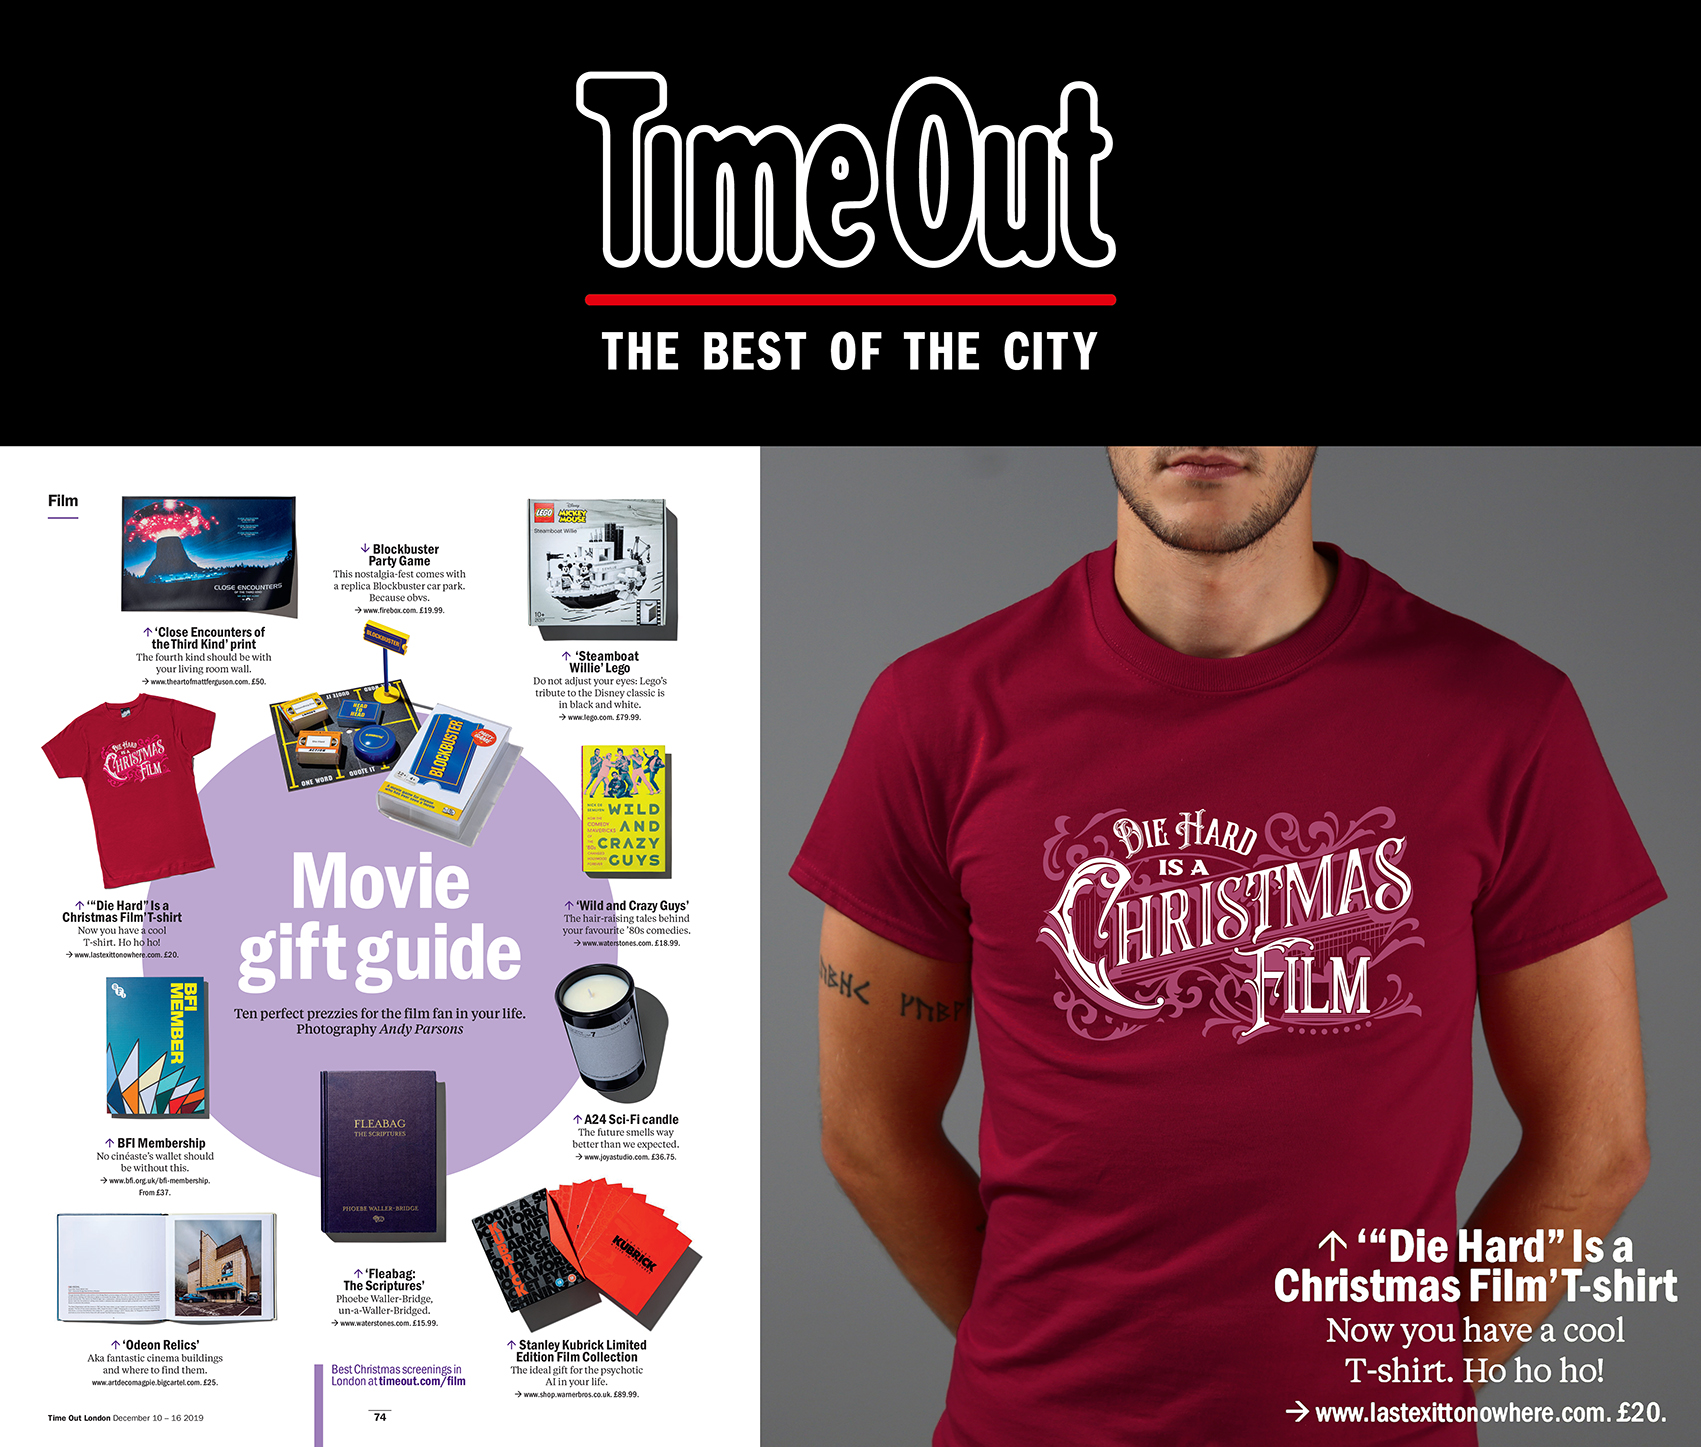 LAST EXIT TO NOWHERE IN TIME OUT LONDON'S GIFT GUIDE